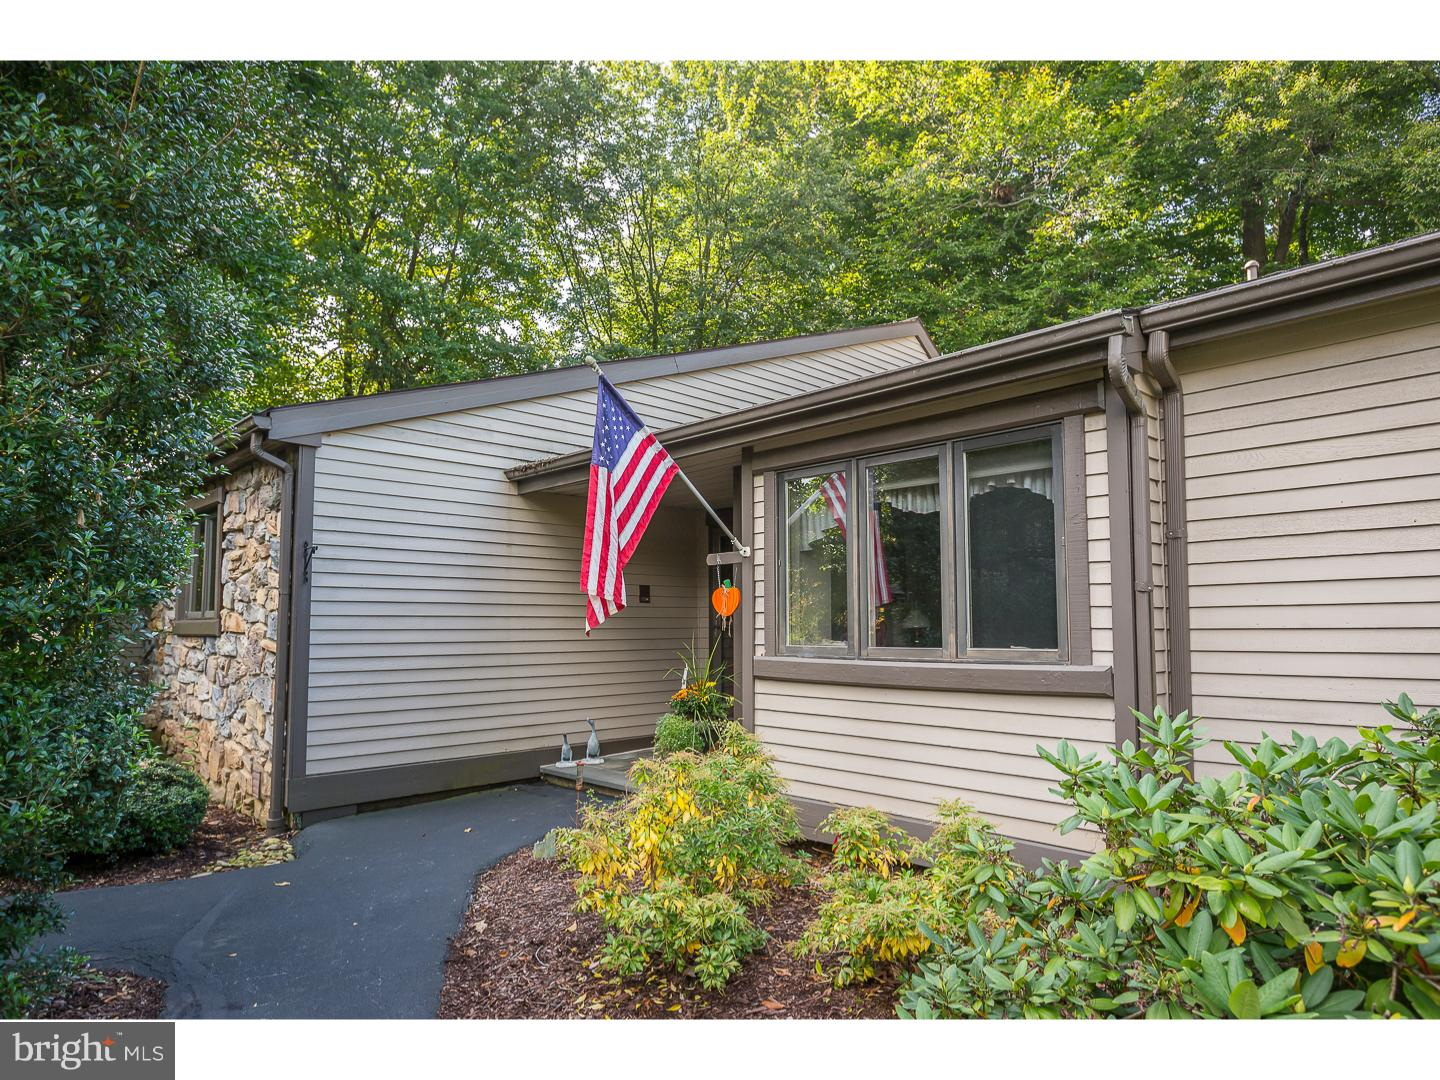 1036 Kennett Way West Chester, PA 19380